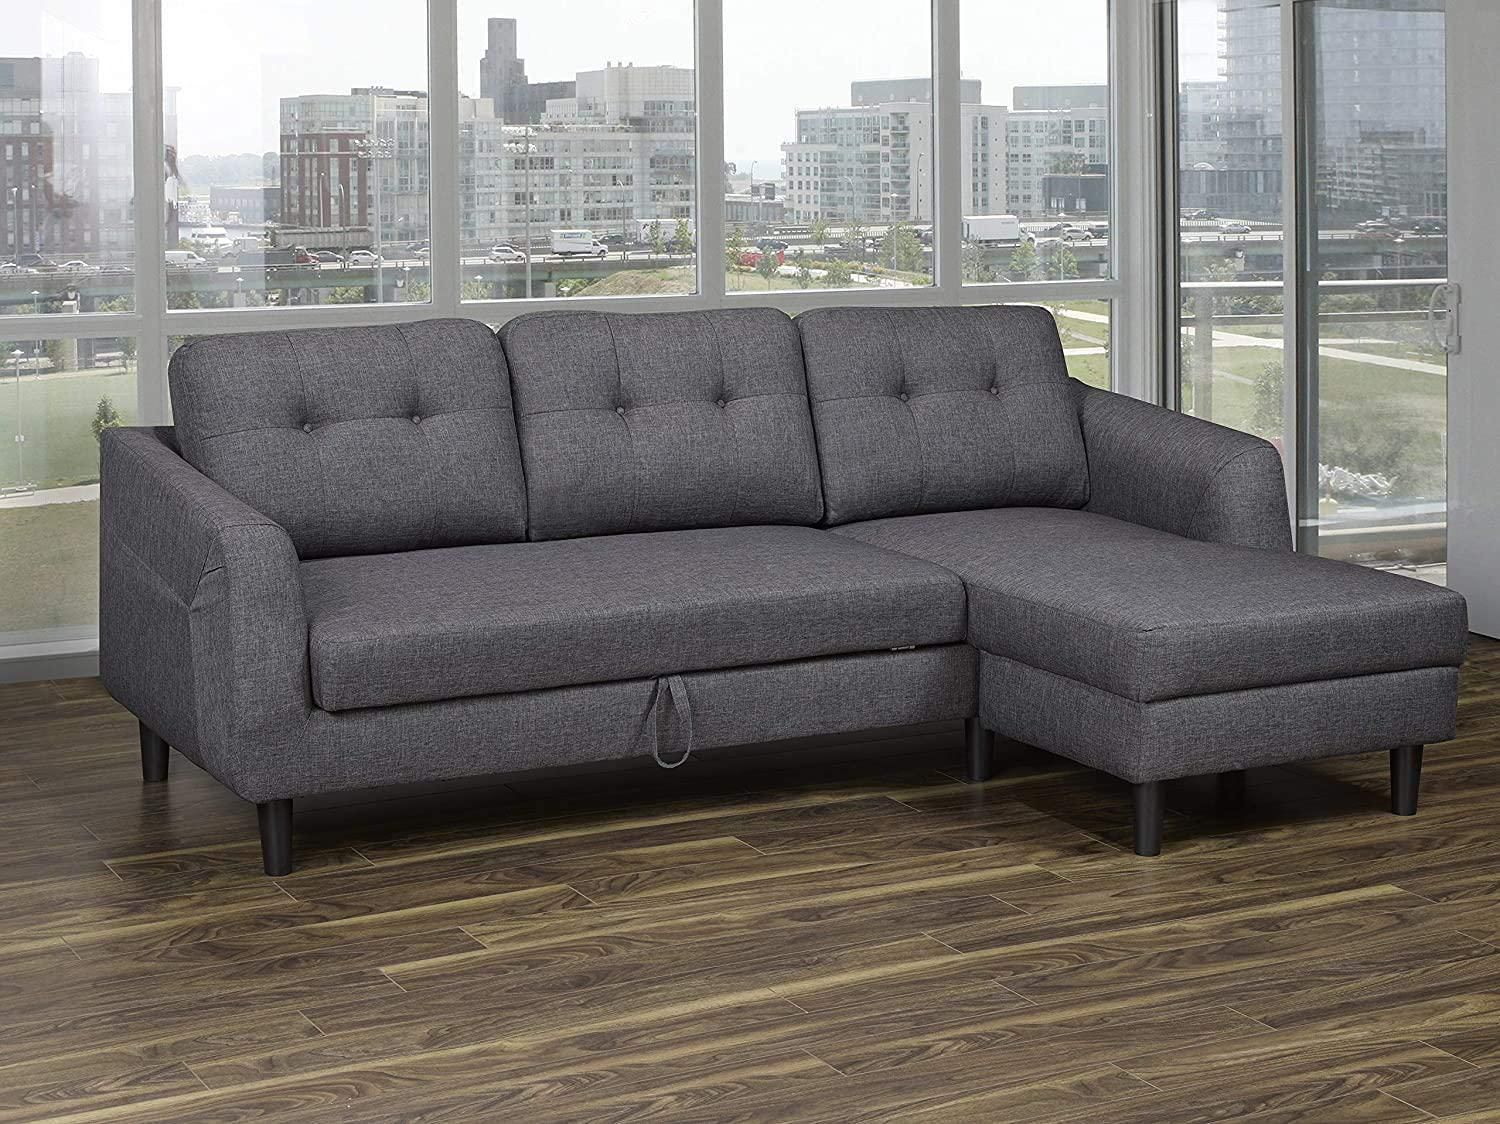 K Living Katie Linen Fabric Sofa Bed Sectional In Dark With Regard To Polyfiber Linen Fabric Sectional Sofas Dark Gray (View 3 of 15)